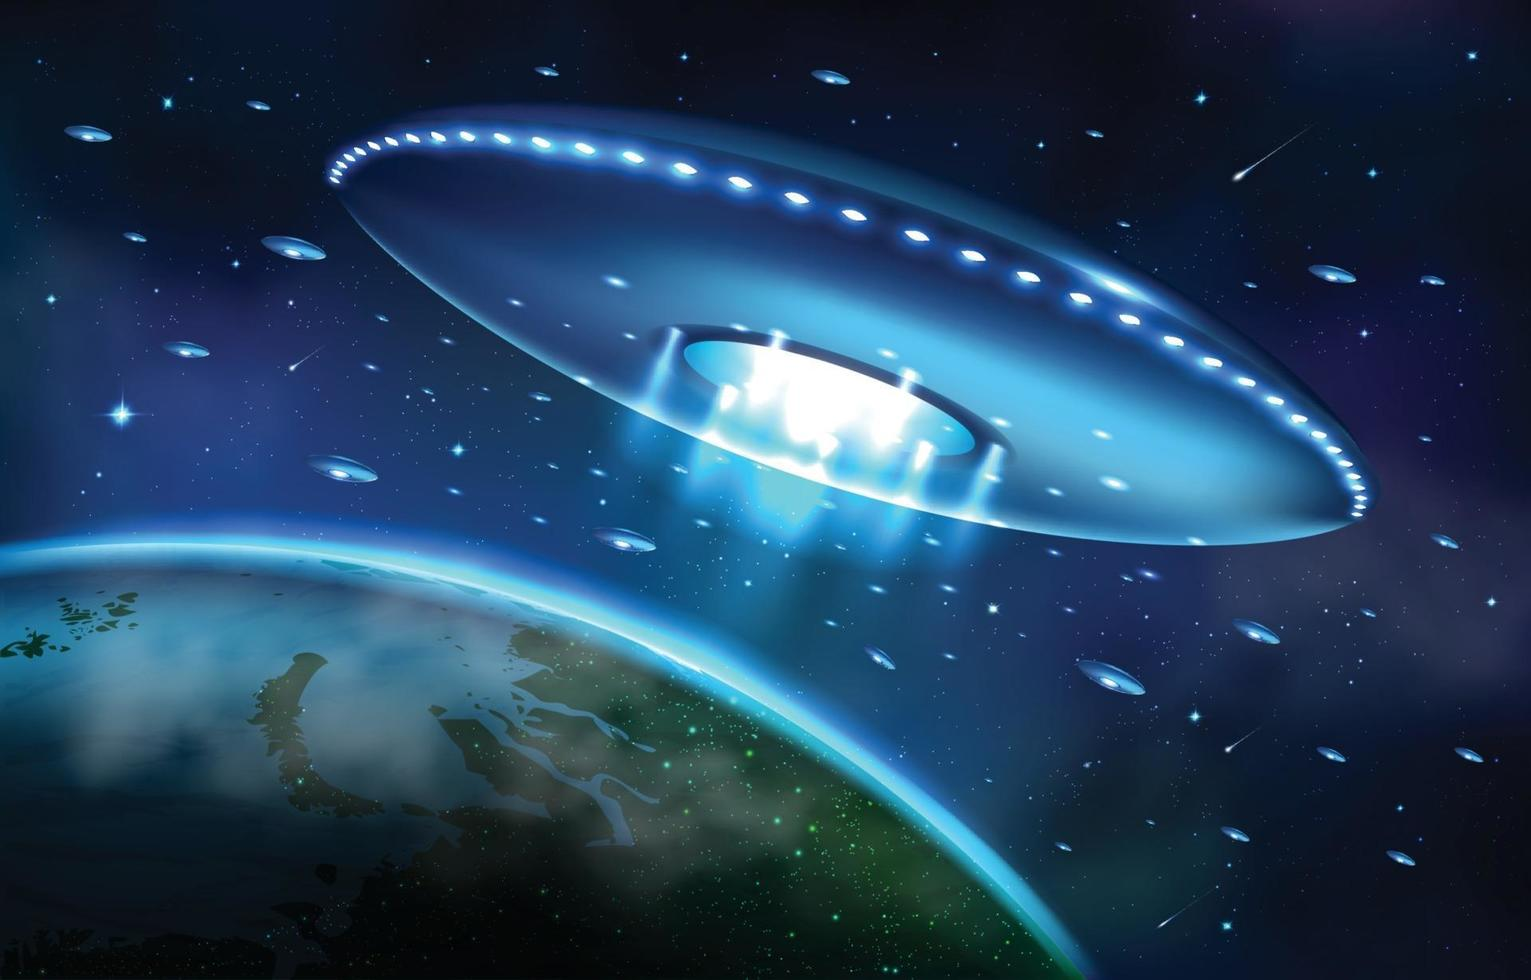 Alien Invasion on Earth with UFO Mothership Concept vector